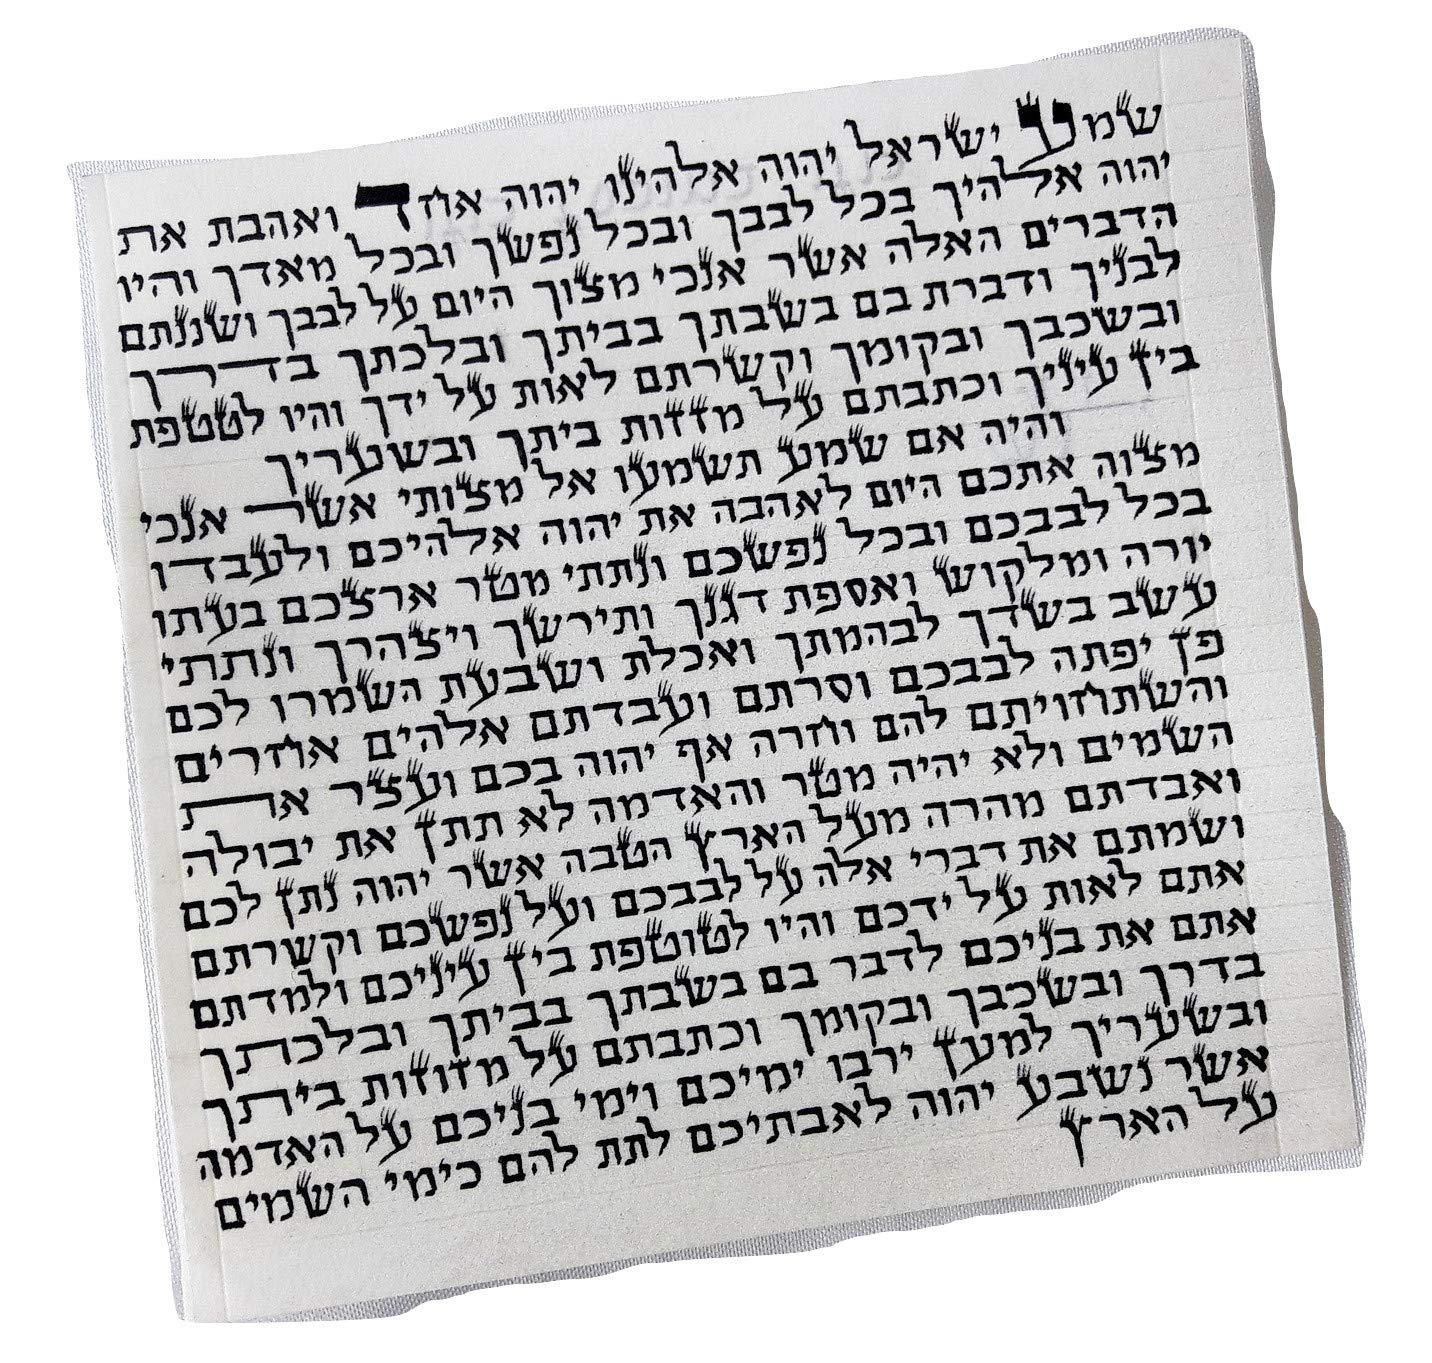 Lot 3 Pc Kosher Mezuzah Scroll Parchment Klaf 2.75'' / 7cm Made in Israel Kosher By a Certified Rabbi by holyland souvenir